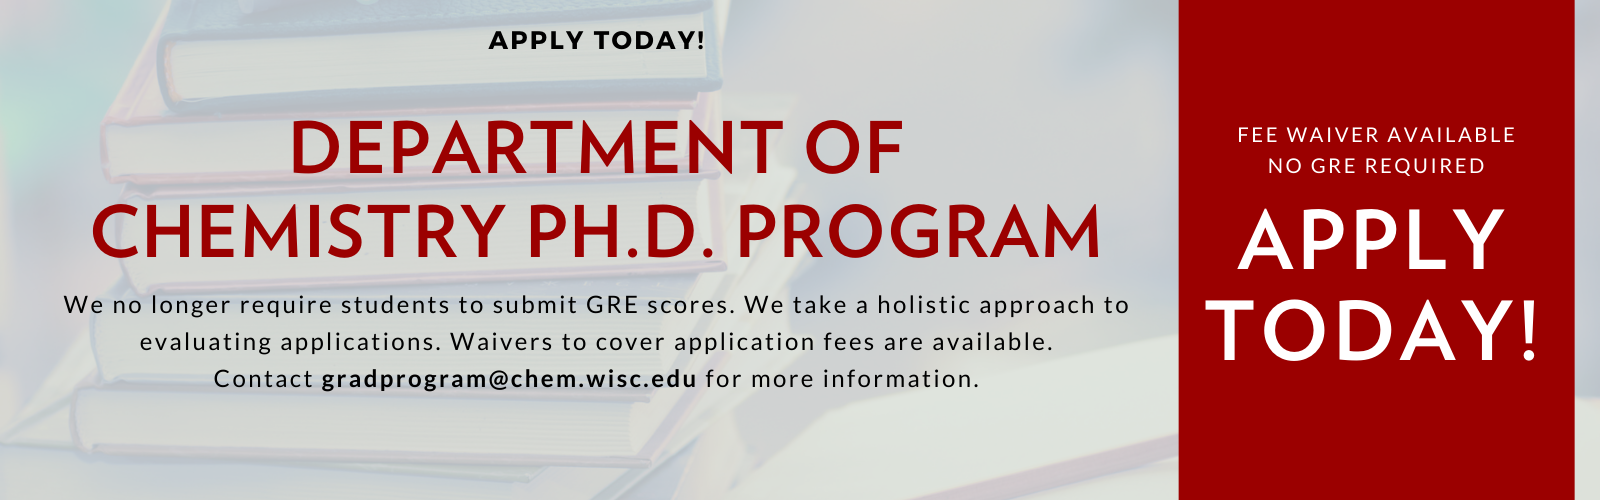 We no longer require students to submit GRE scores. We take a holistic approach to evaluating applications. Waivers to cover application fees are available. Contact gradprogram@chem.wisc.edu for more information.